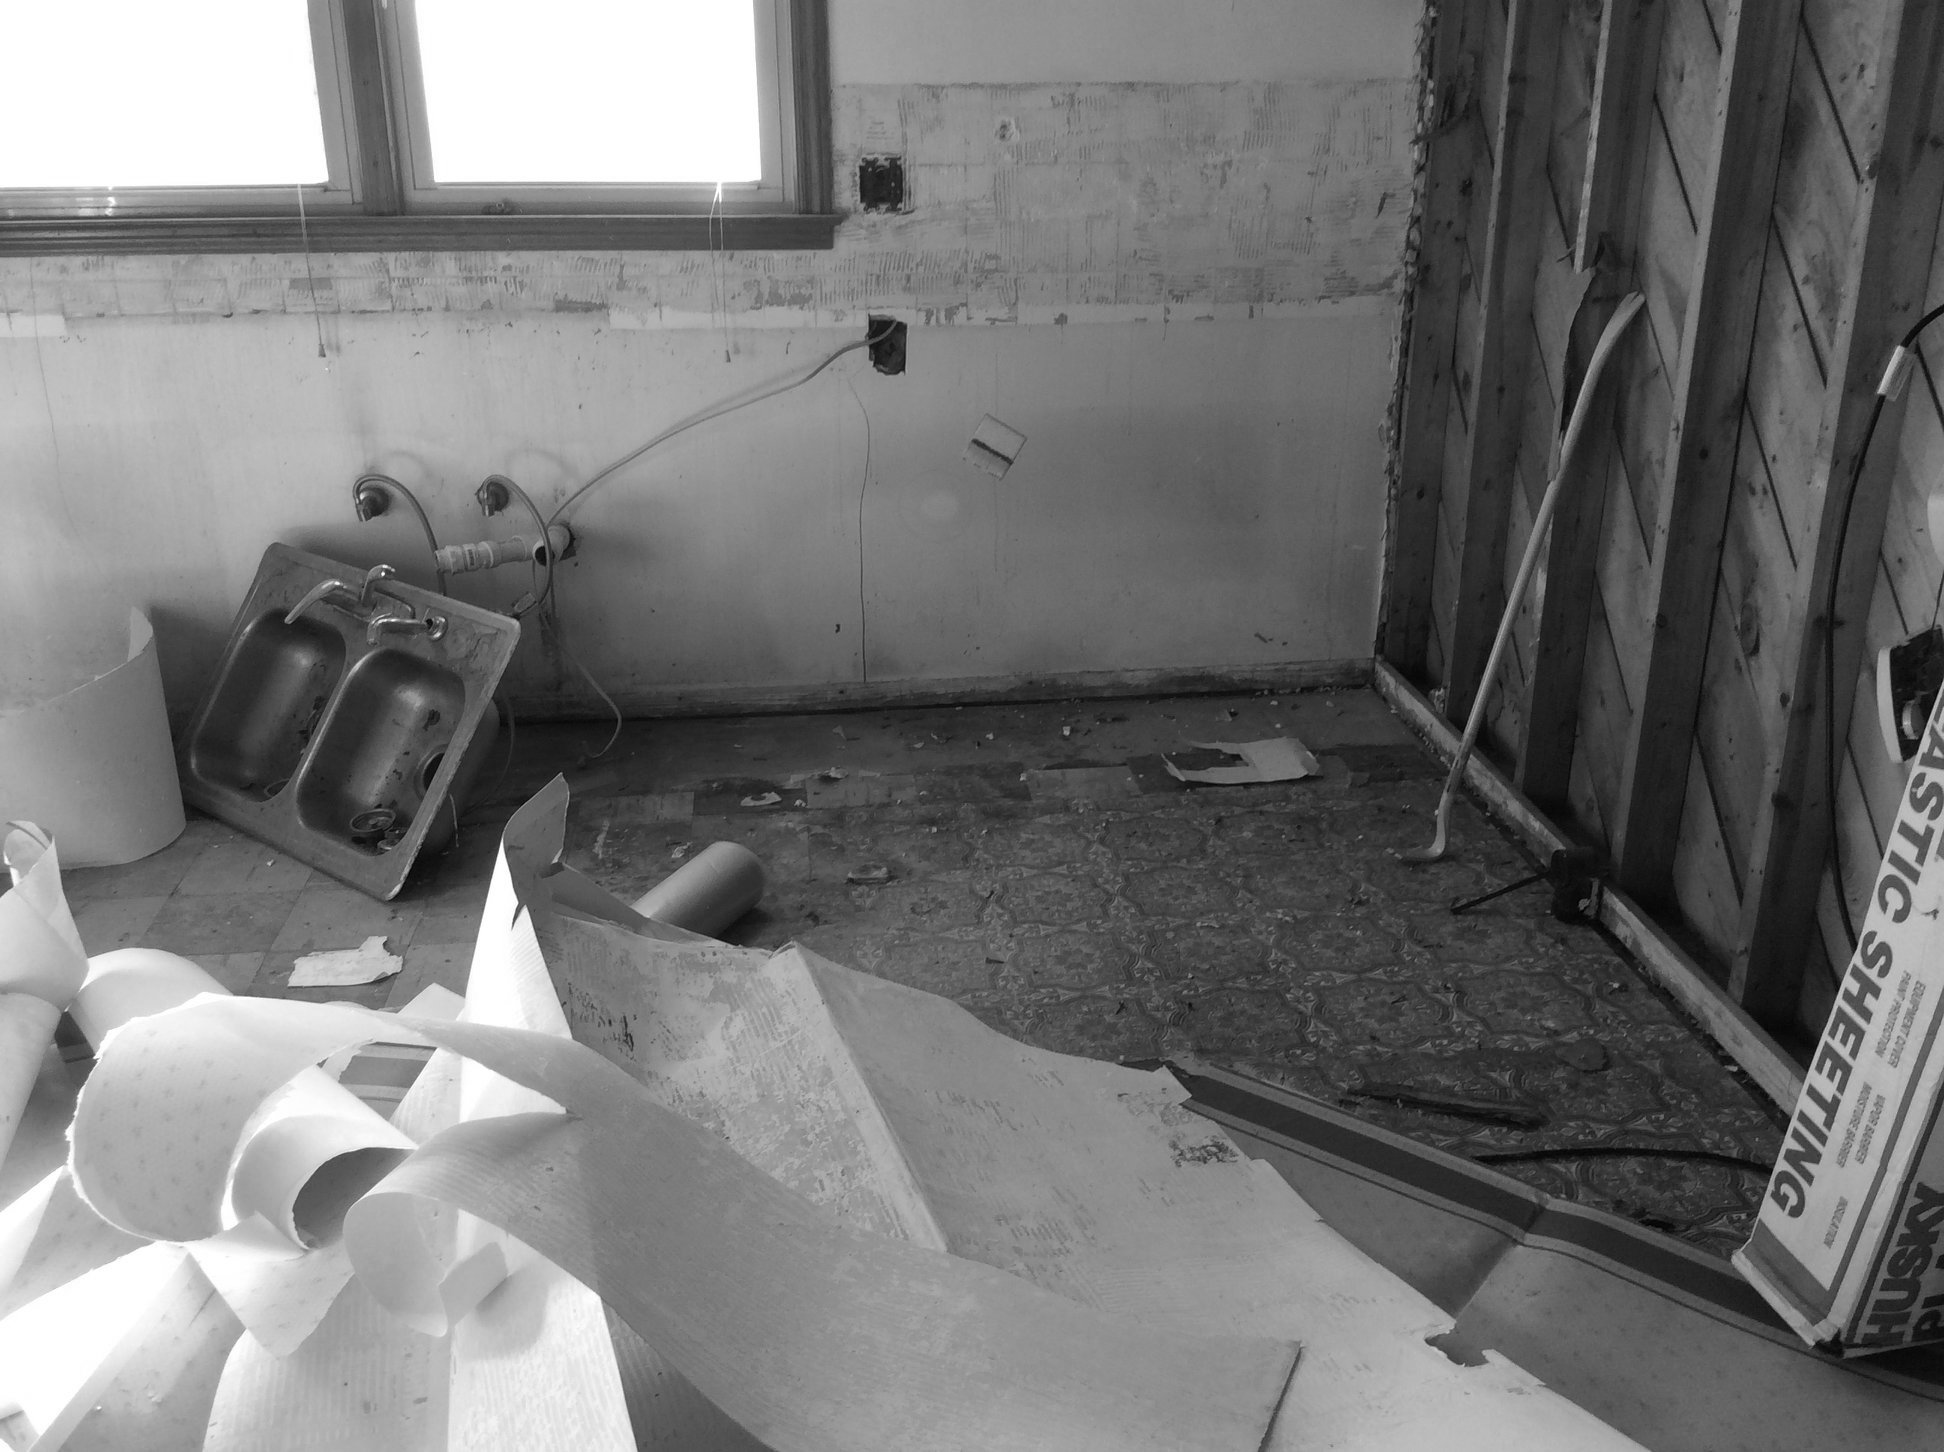 Where Are Asbestos Hazards In My Home?